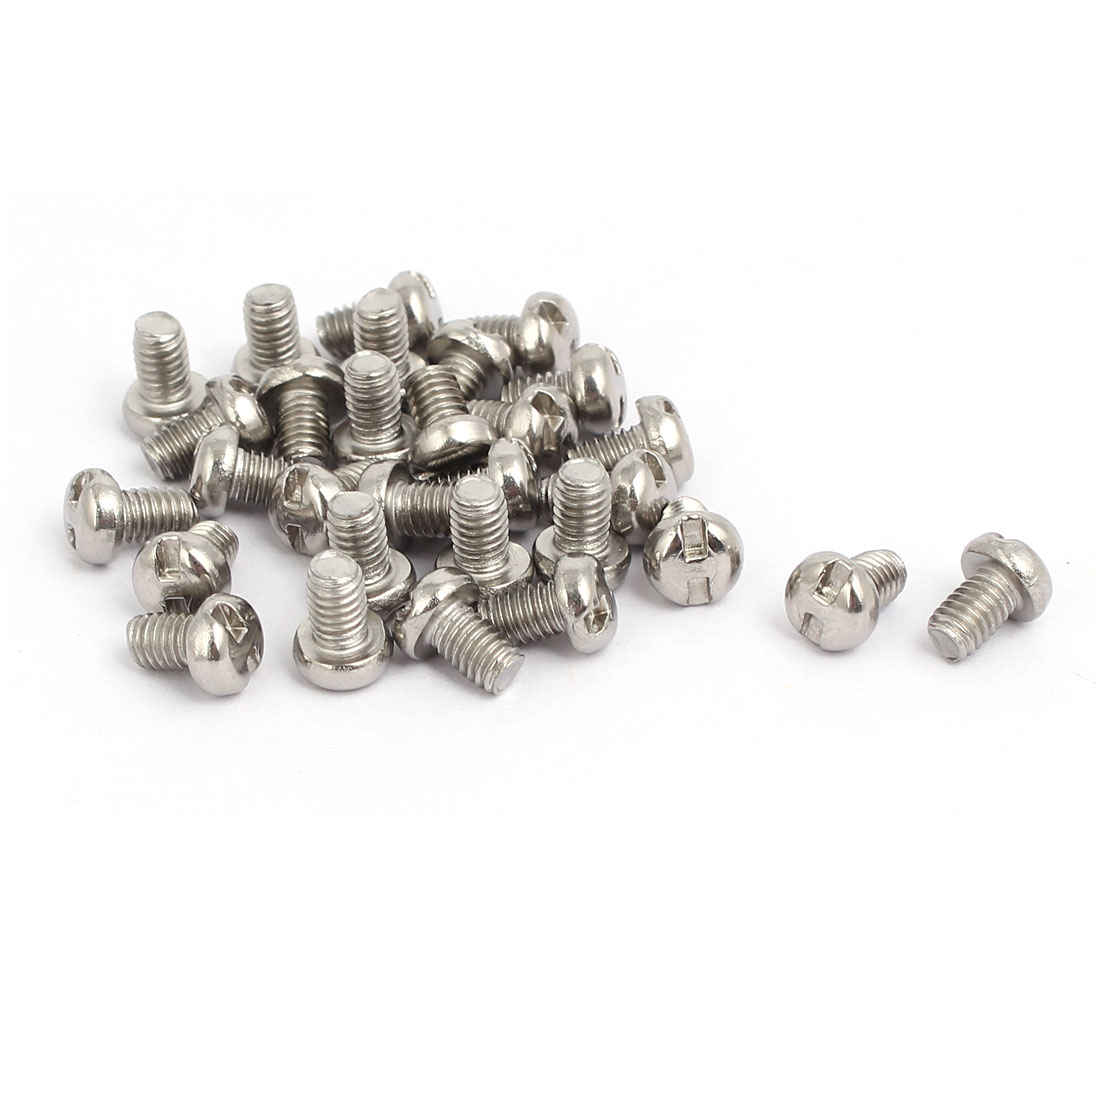 M4x6mm 304 Stainless Steel H-Type Drive Pan Head Tamper Proof Screws 30pcs